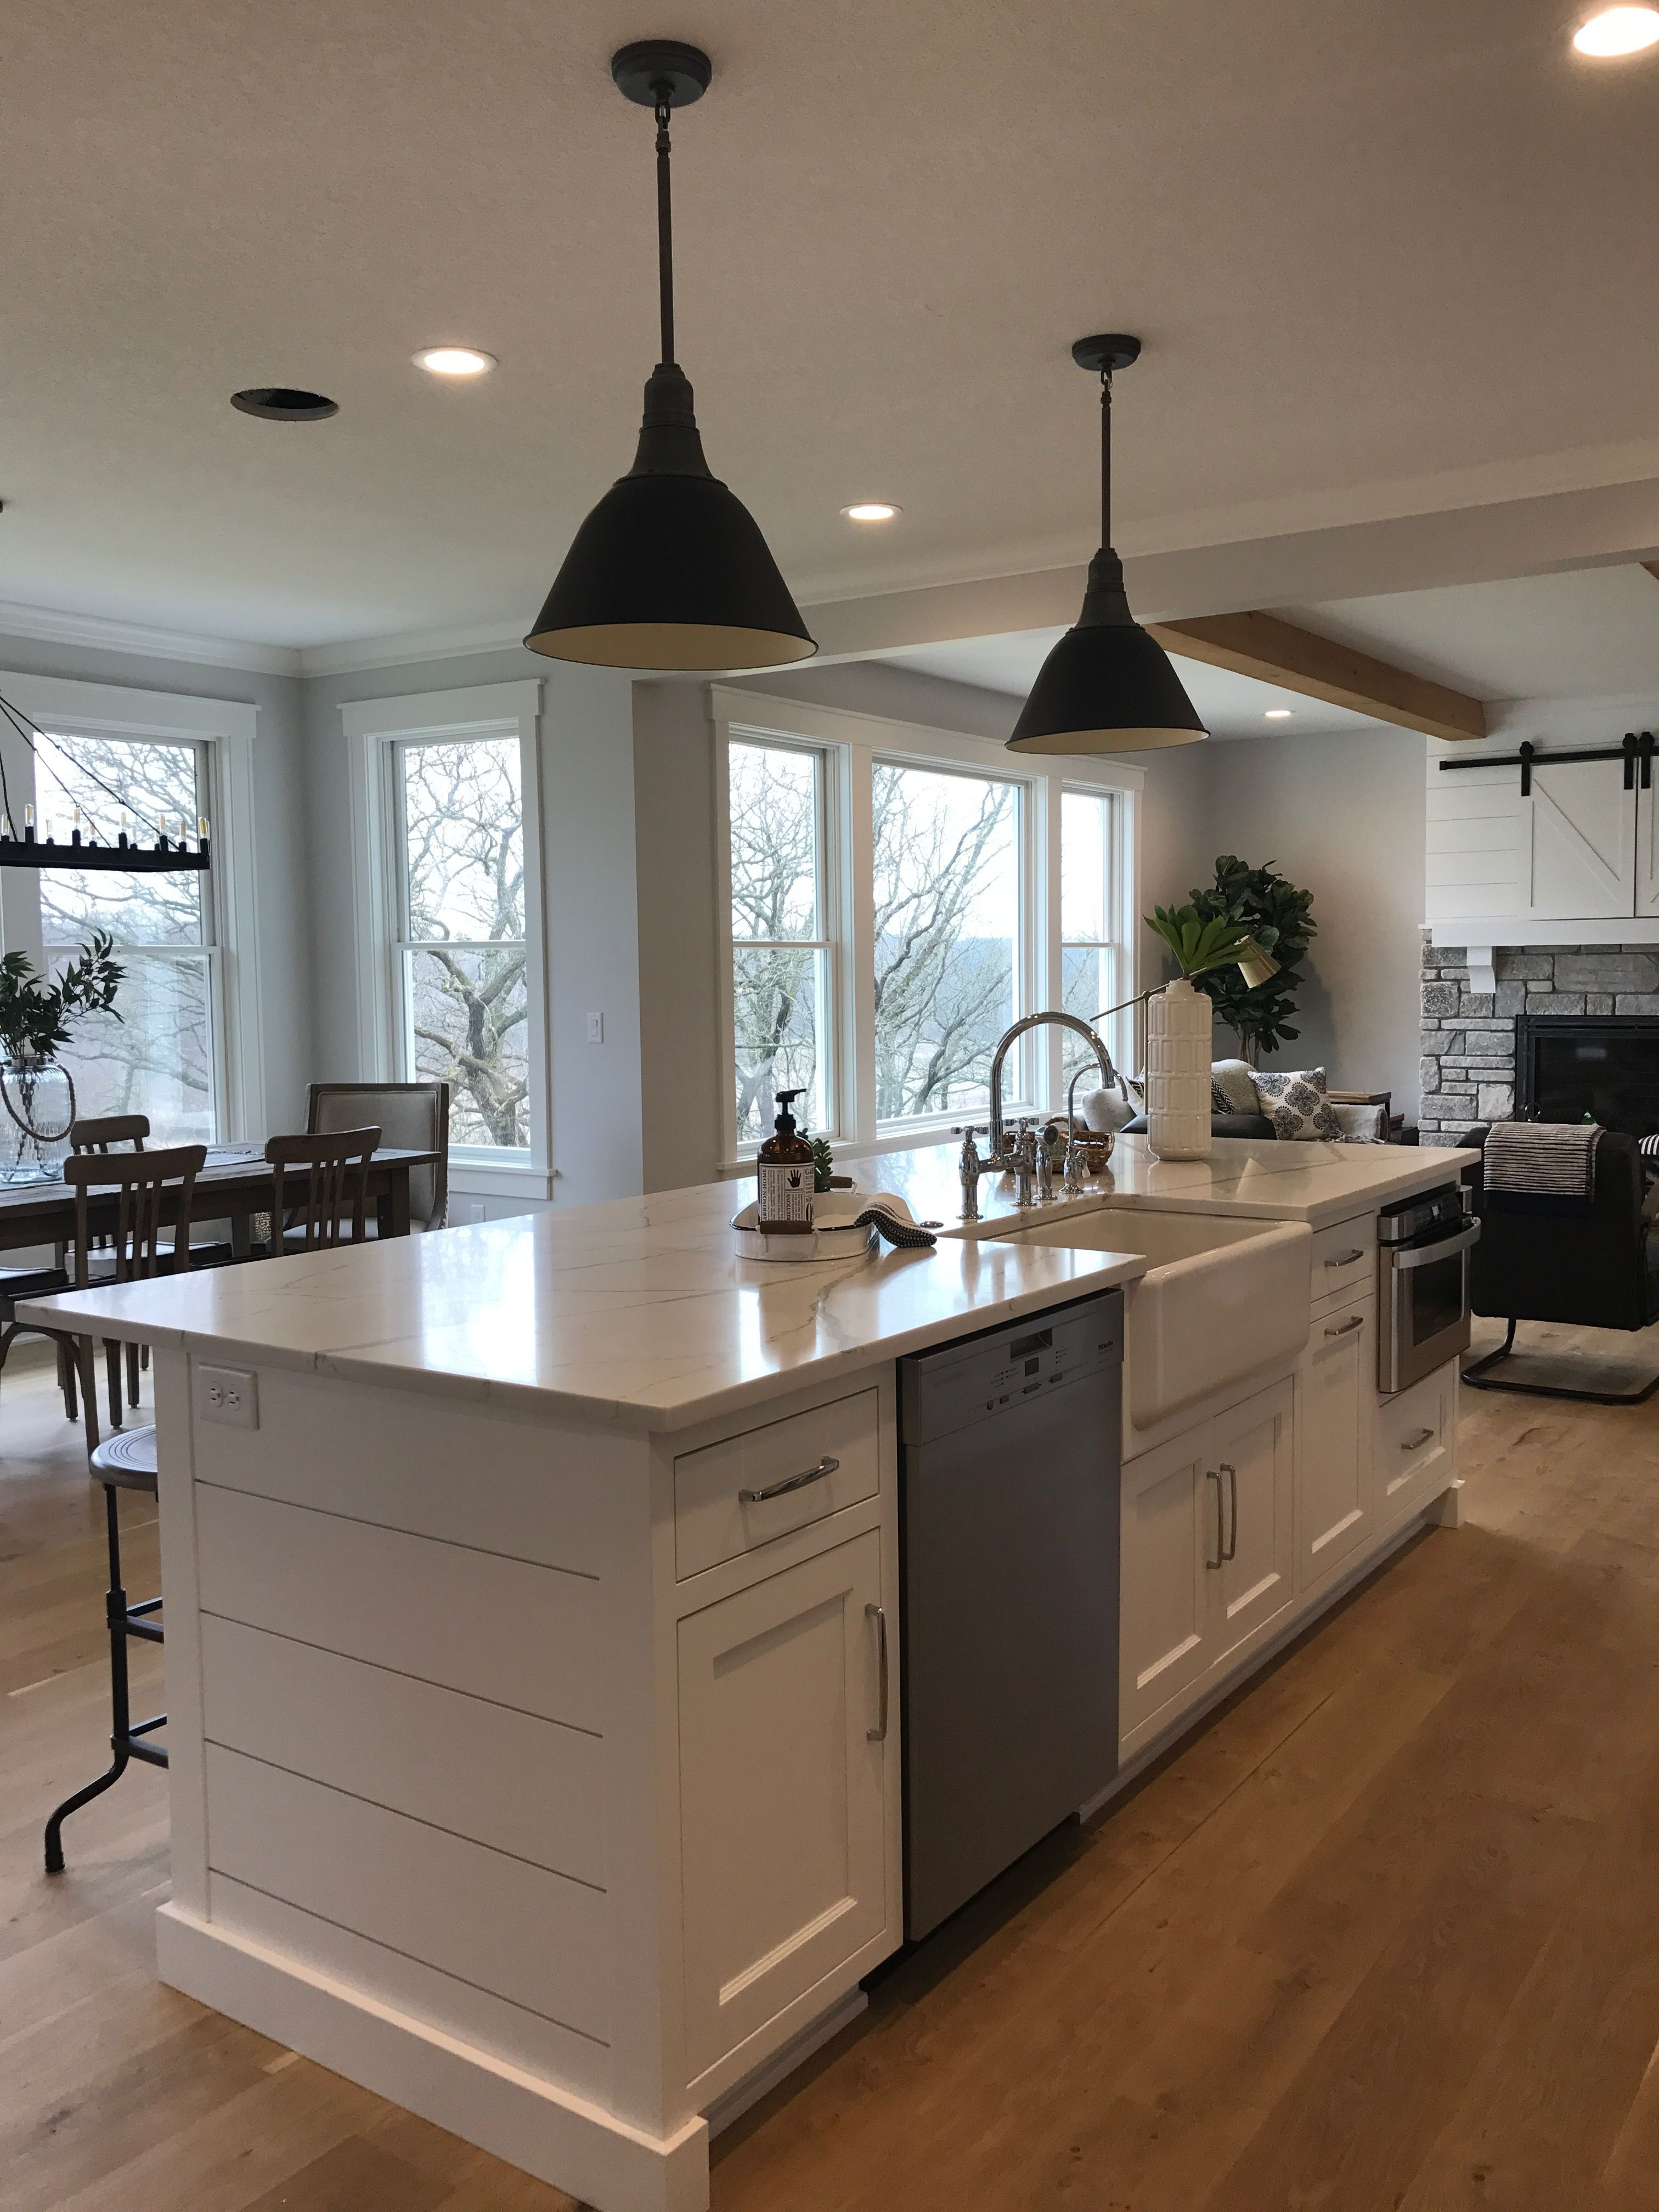 Pin By Rhanna Bastos On Small Home Decor In 2020 Kitchen Remodel Farmhouse Kitchen Lighting Home Kitchens